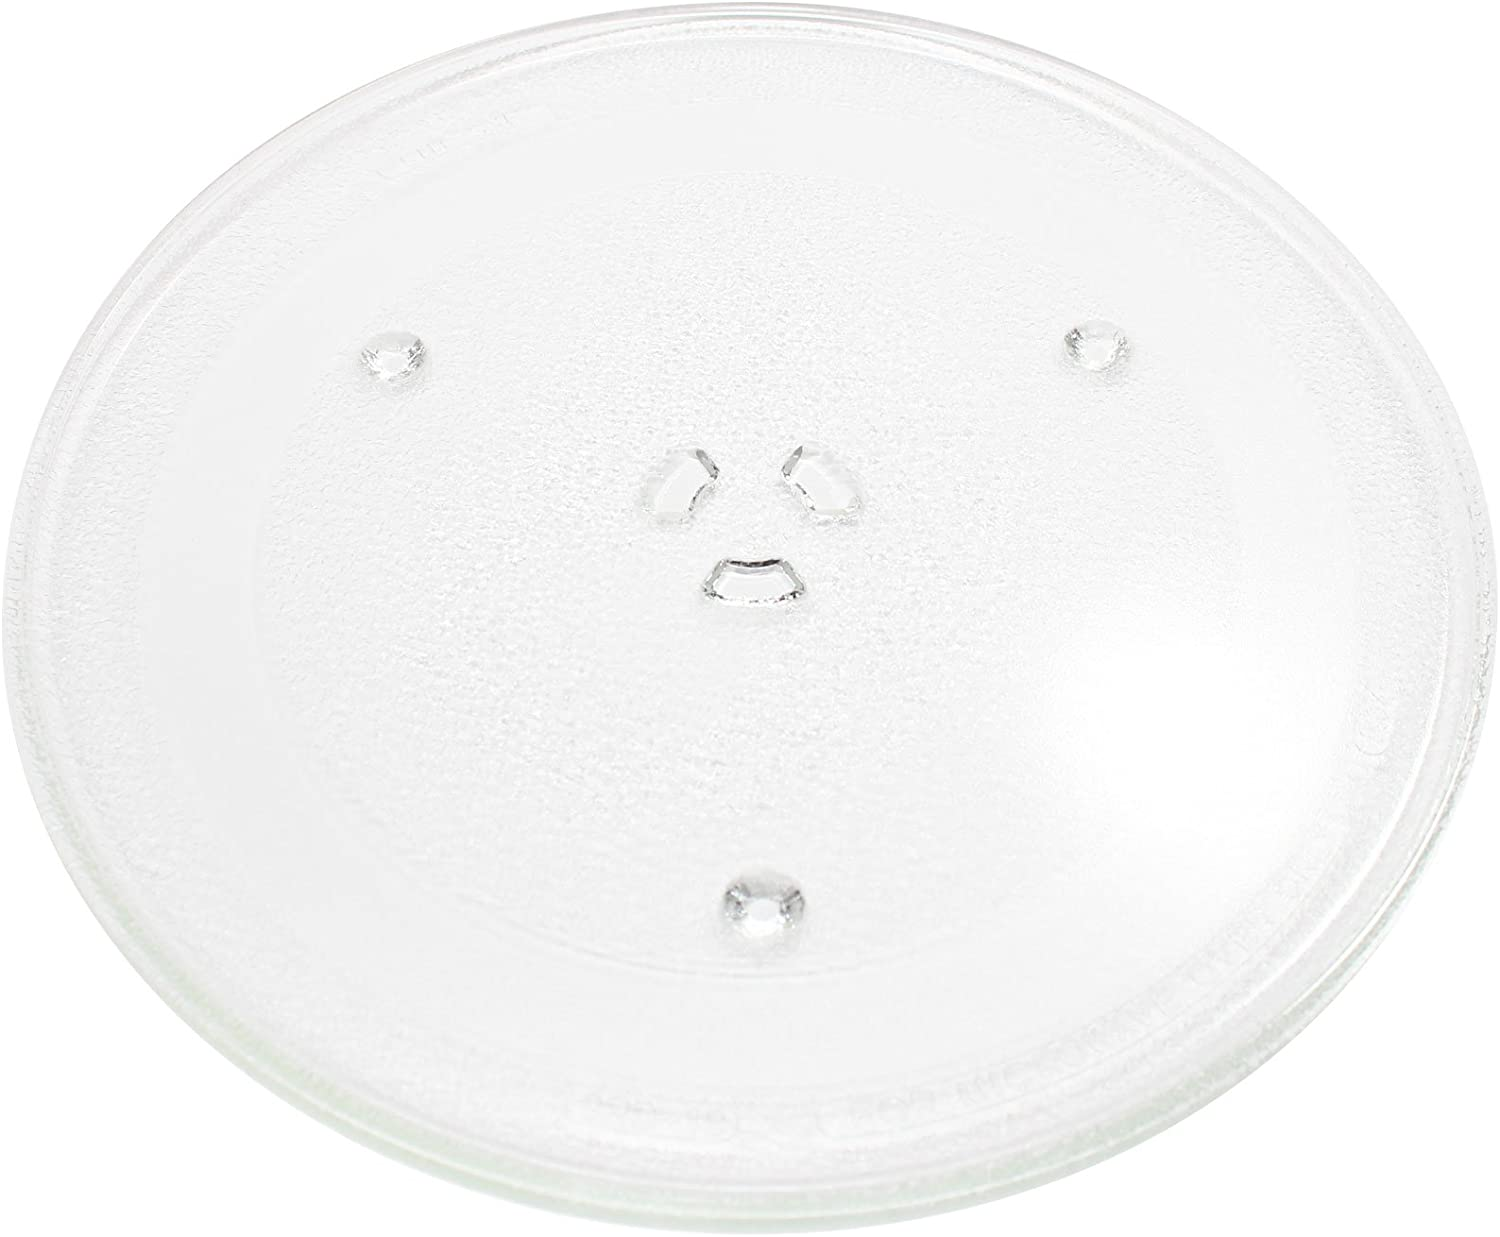 "Replacement for Frigidaire 5304456198 Microwave Glass Plate - Compatible with Frigidaire 5304456198 Microwave Glass Turntable Tray - 12 1/2"" (318mm)"